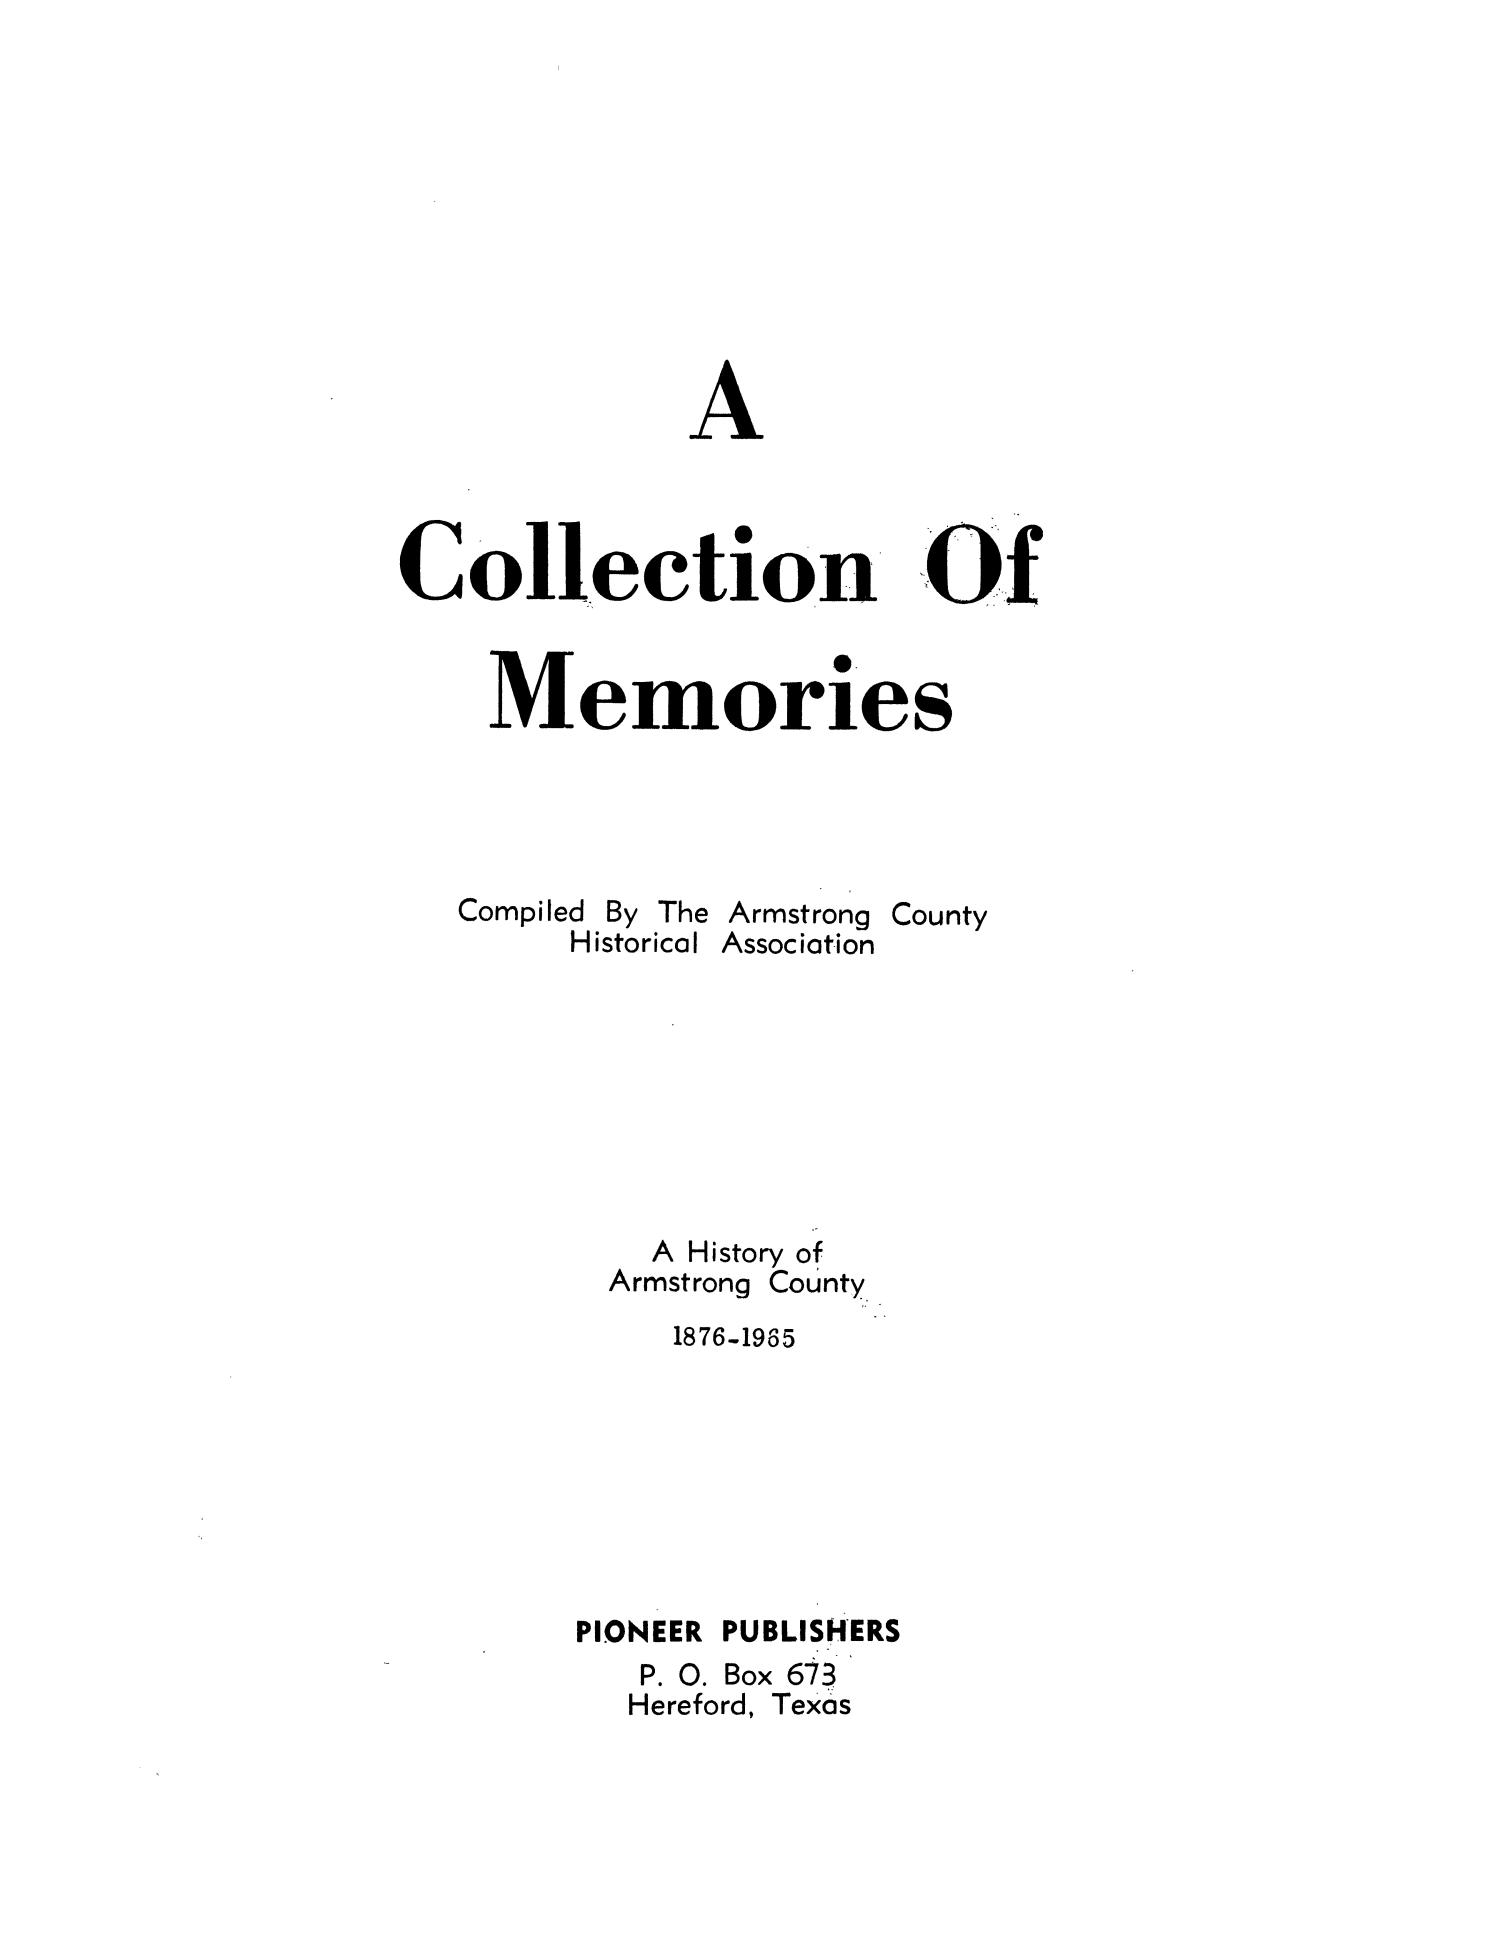 A Collection of Memories: A History of Armstrong County, 1876-1965                                                                                                      Title Page